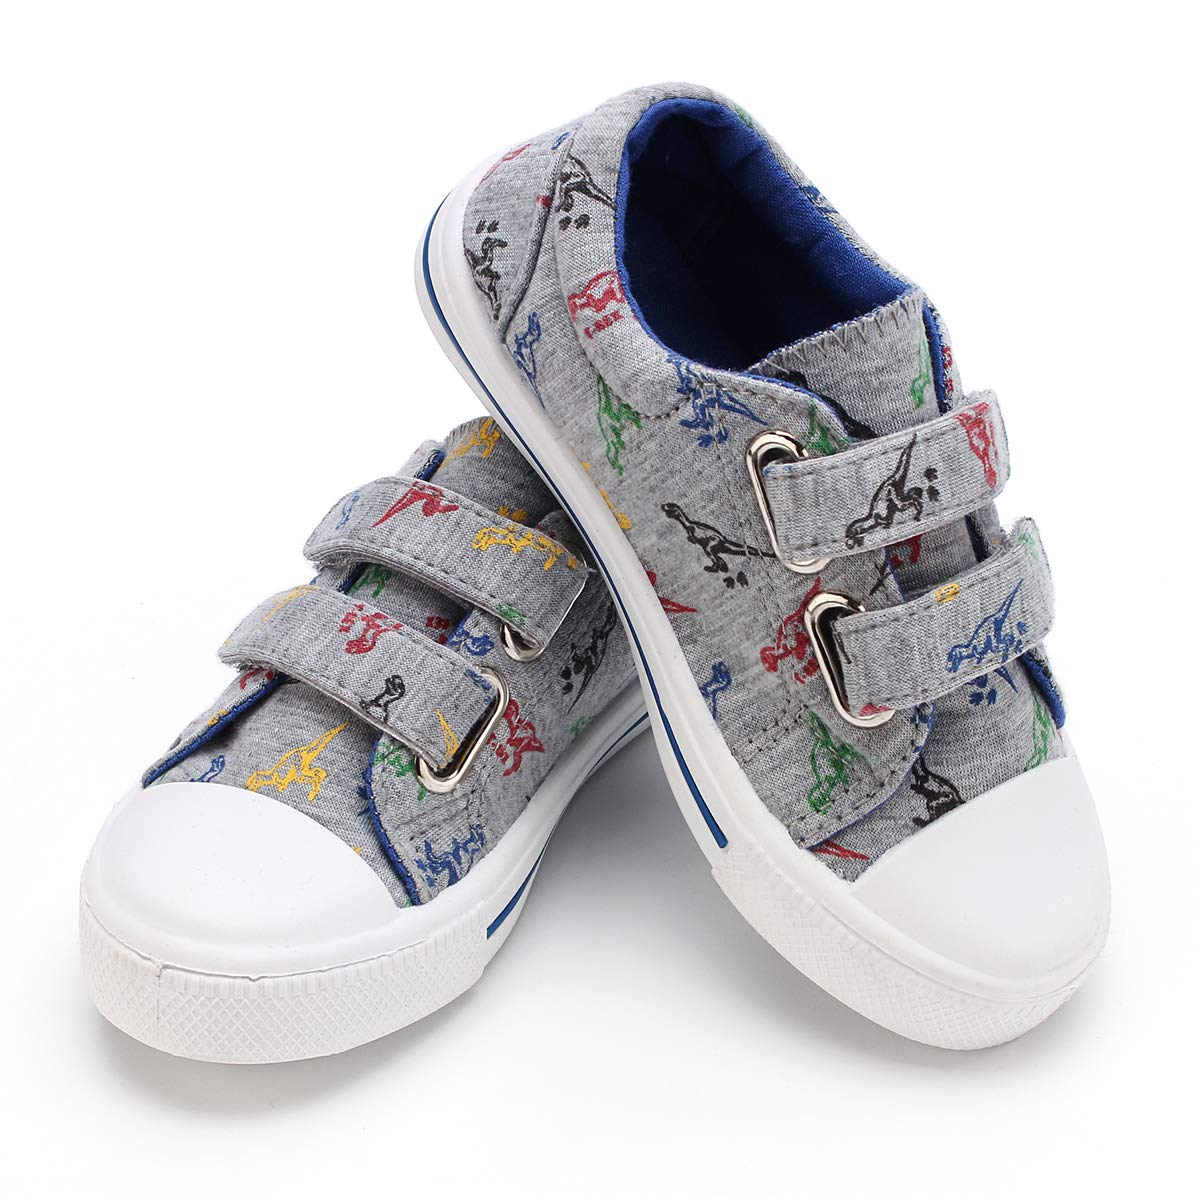 KomForme Toddler Kids Boy Girl Toddler Sneakers Cartoon Dual Hook and Loops Baby Sneakers Shoes